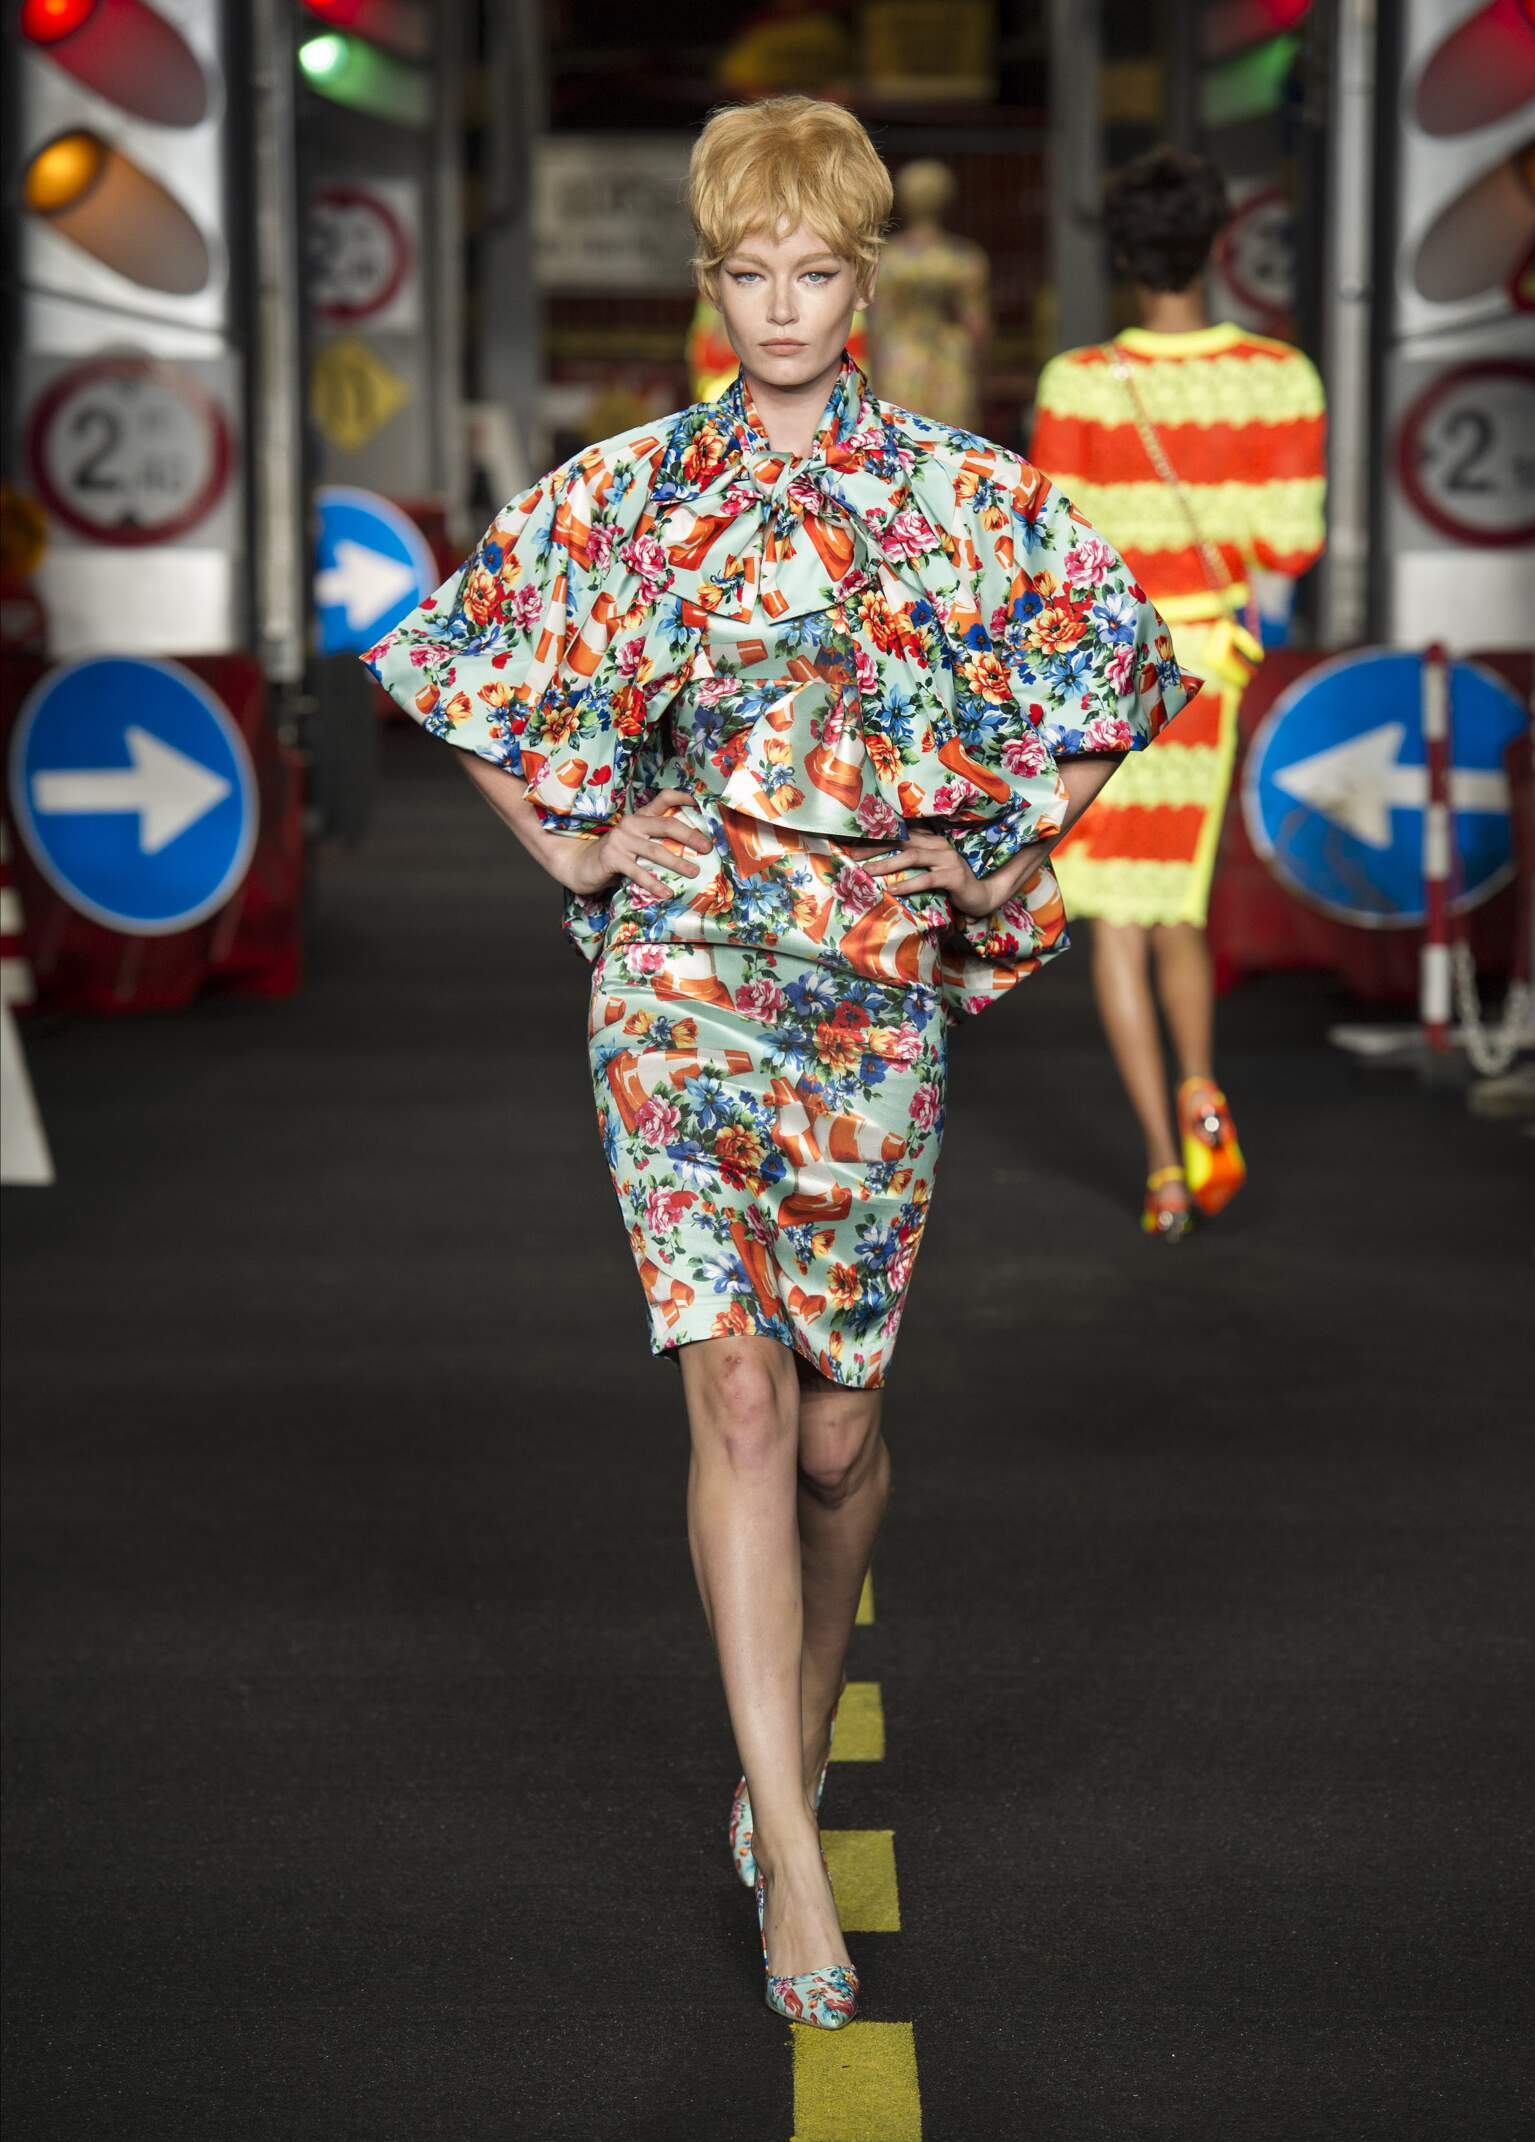 MOSCHINO SPRING SUMMER 2016 WOMEN'S COLLECTION | The